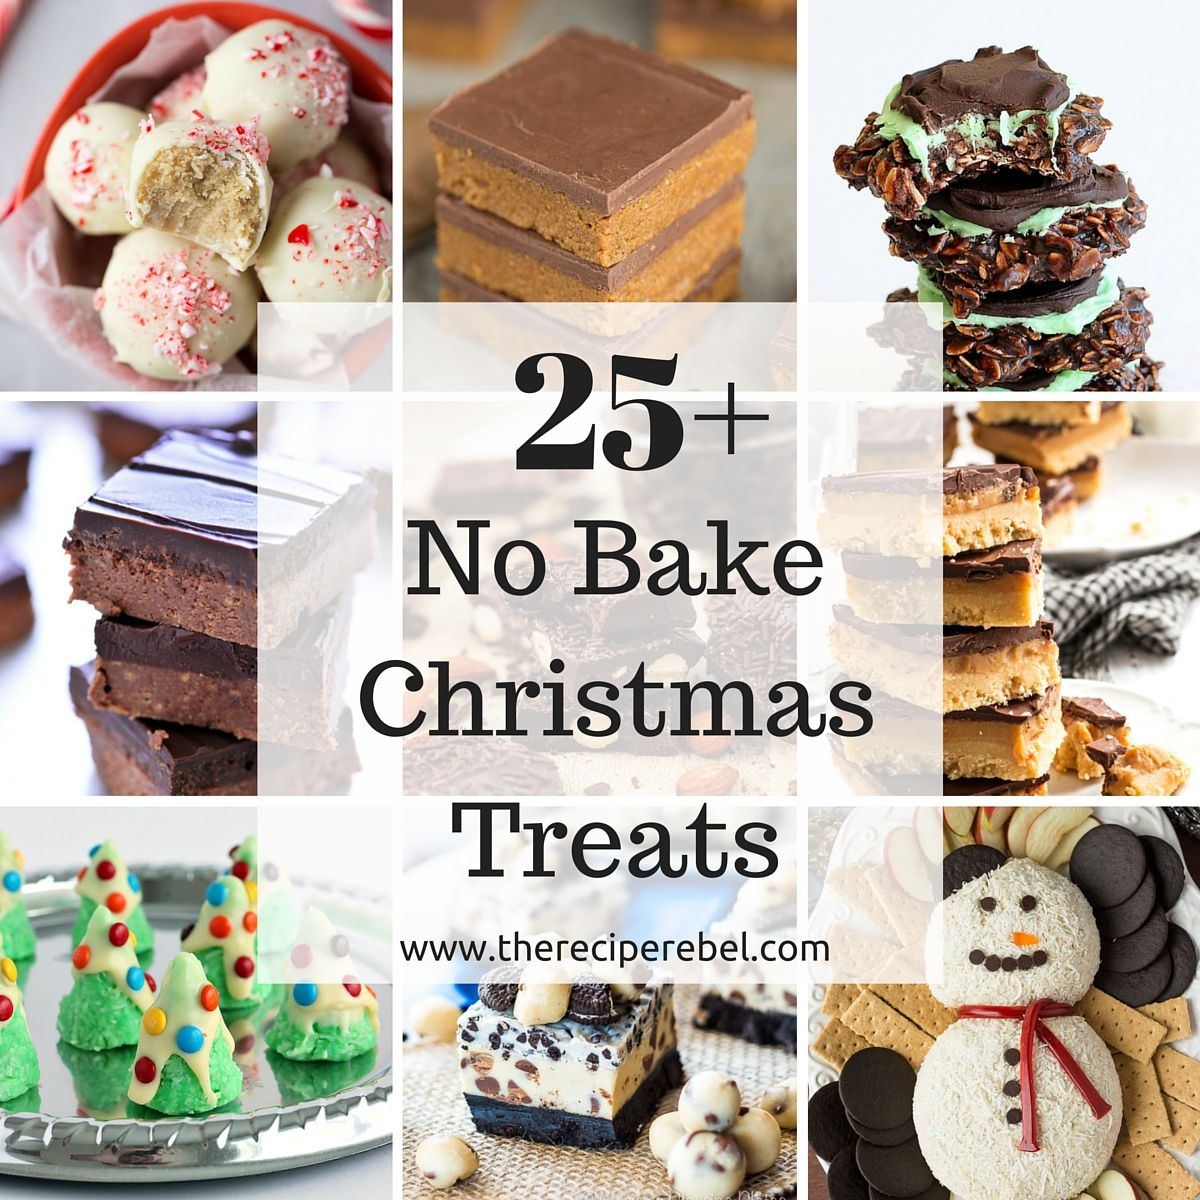 21 No Bake Christmas Treats including cookies, bars, candies and ...